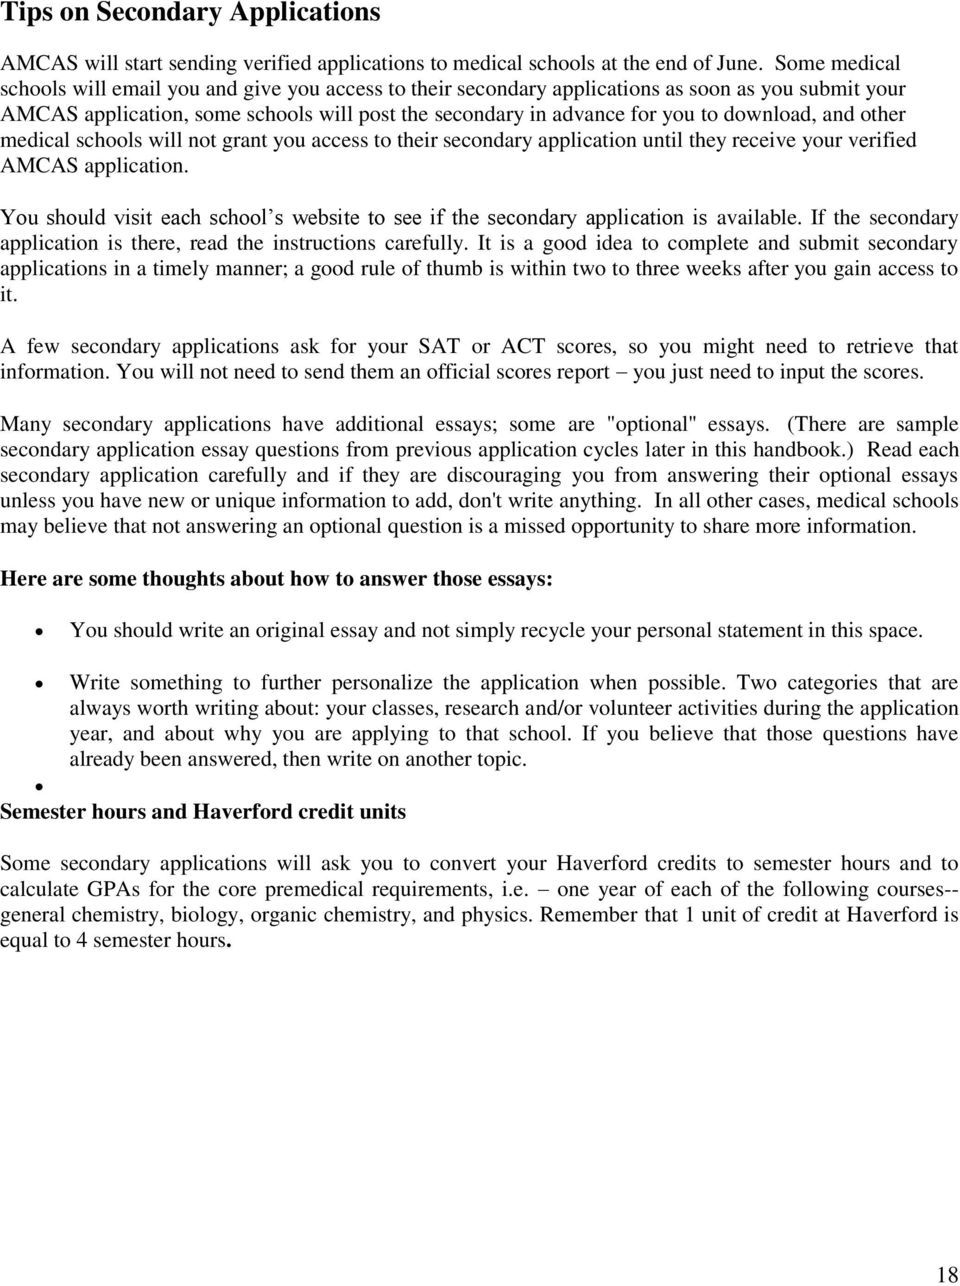 HAVERFORD COLLEGE Medical School Application Guide for